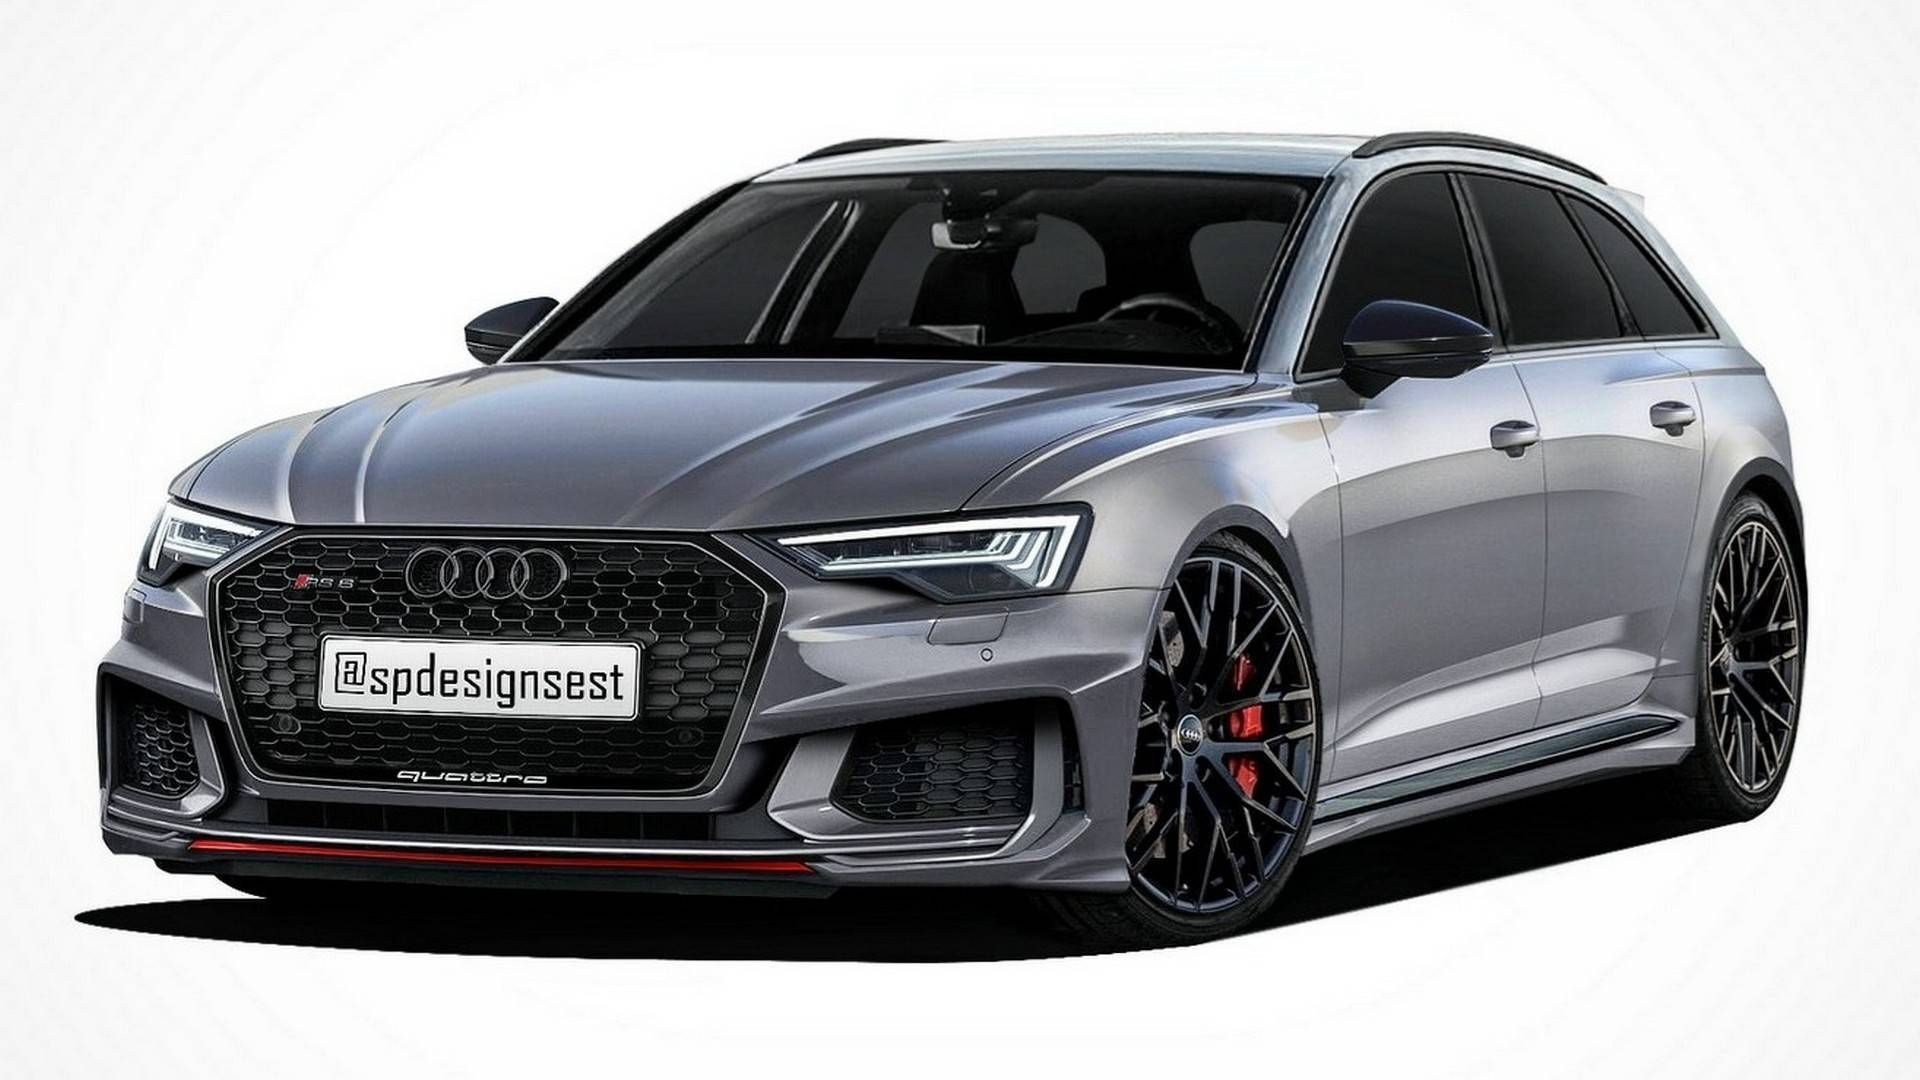 2019 Audi Rs6 Avant First Drive Price Performance And Review Cars Review 2019 Audi Rs6 Audi A6 Avant Audi Wagon